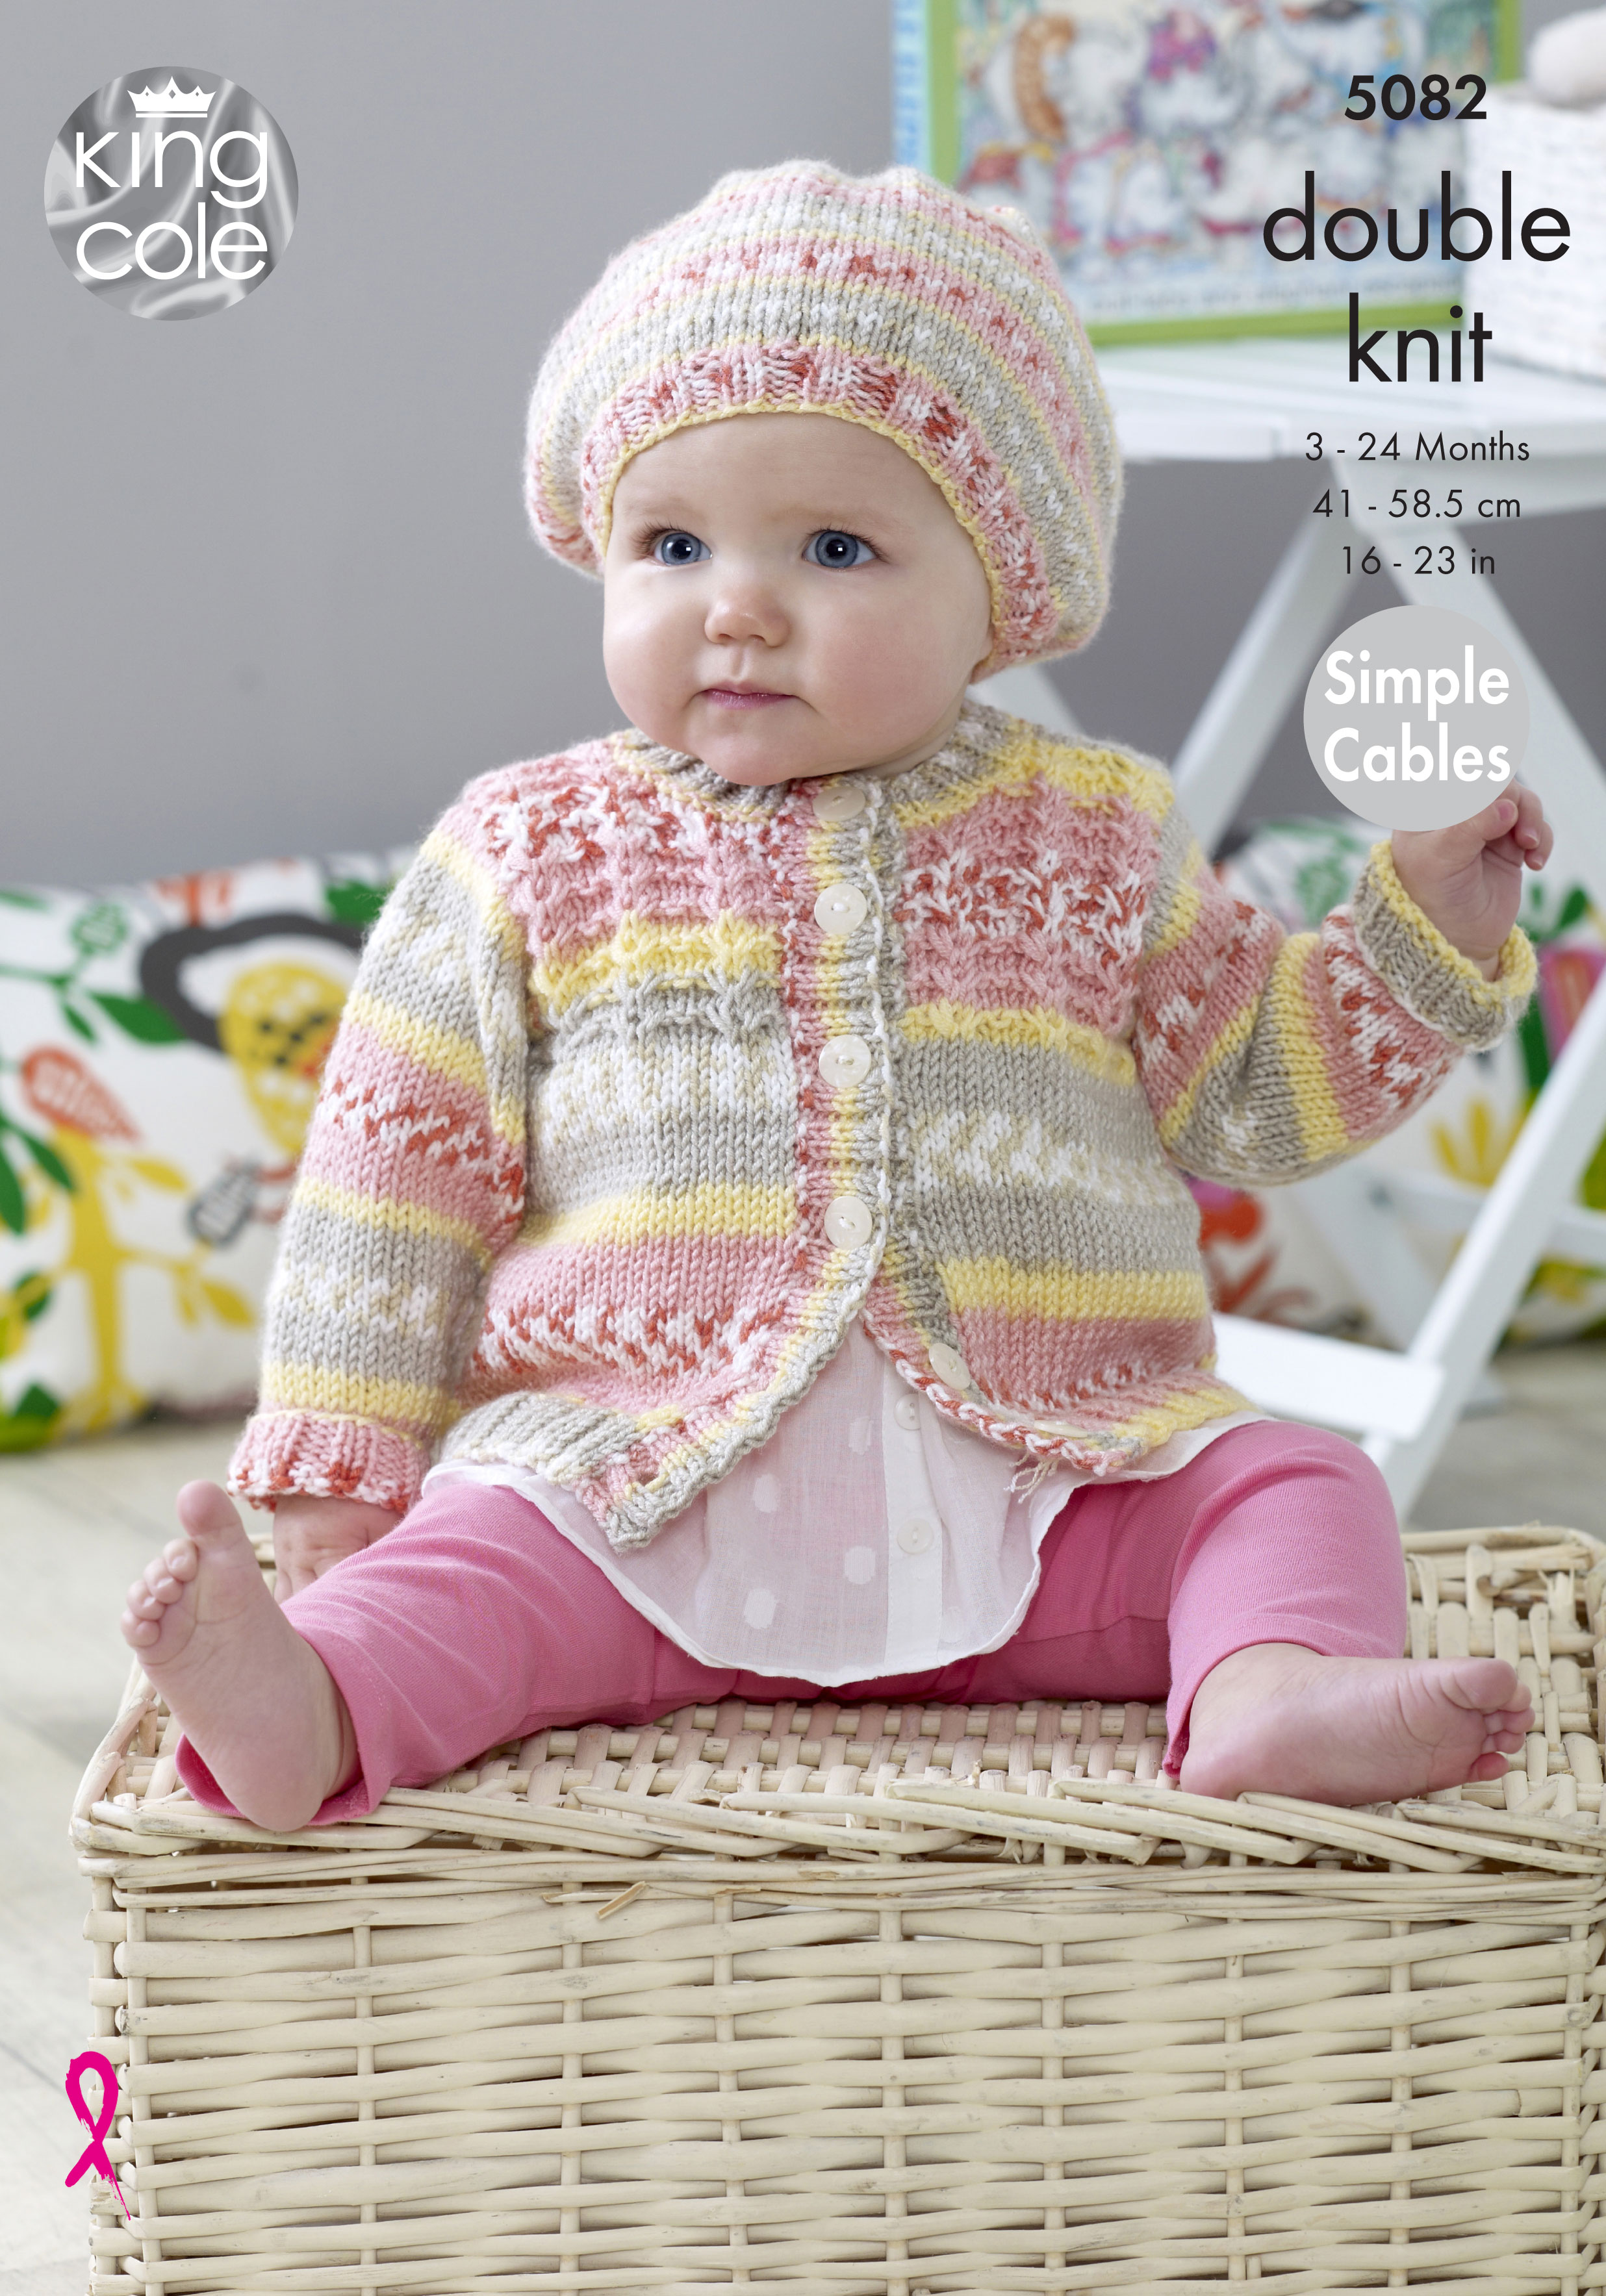 Baby DK Knitting Pattern Simple Cable Sweater Cardigans Blanket King Cole 5082